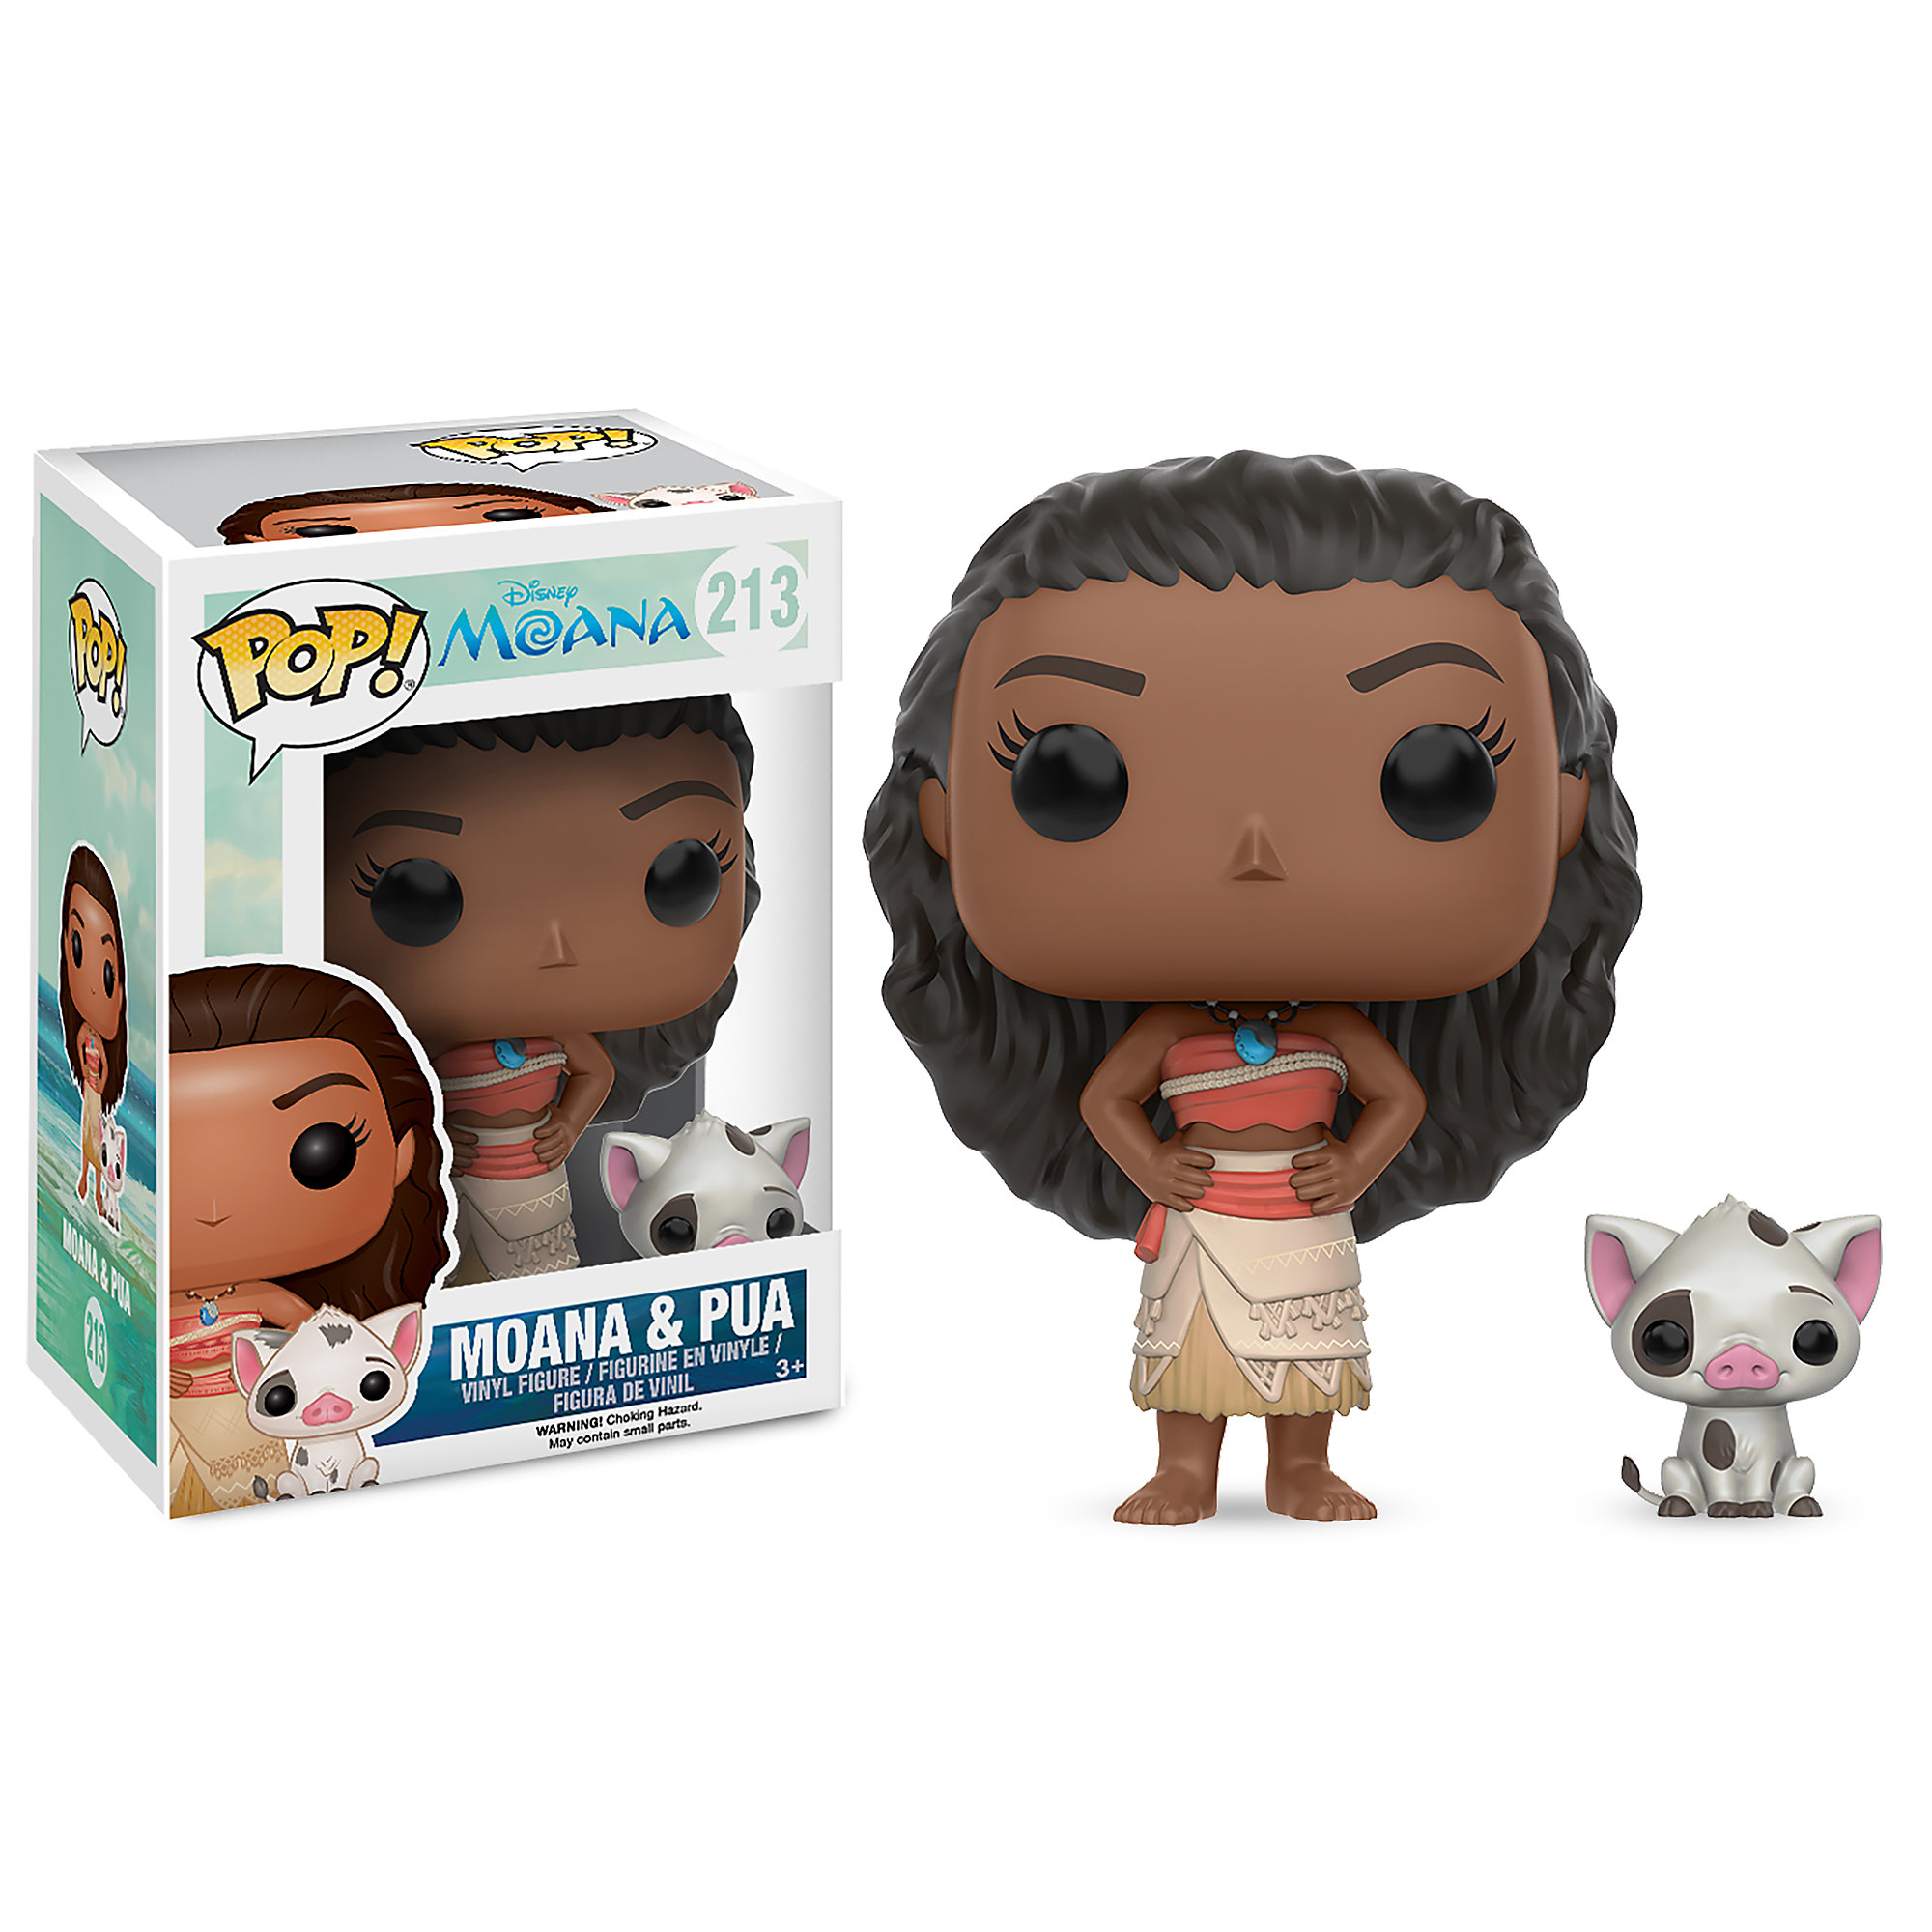 Moana & Pua Pop! Vinyl Figure Set by Funko